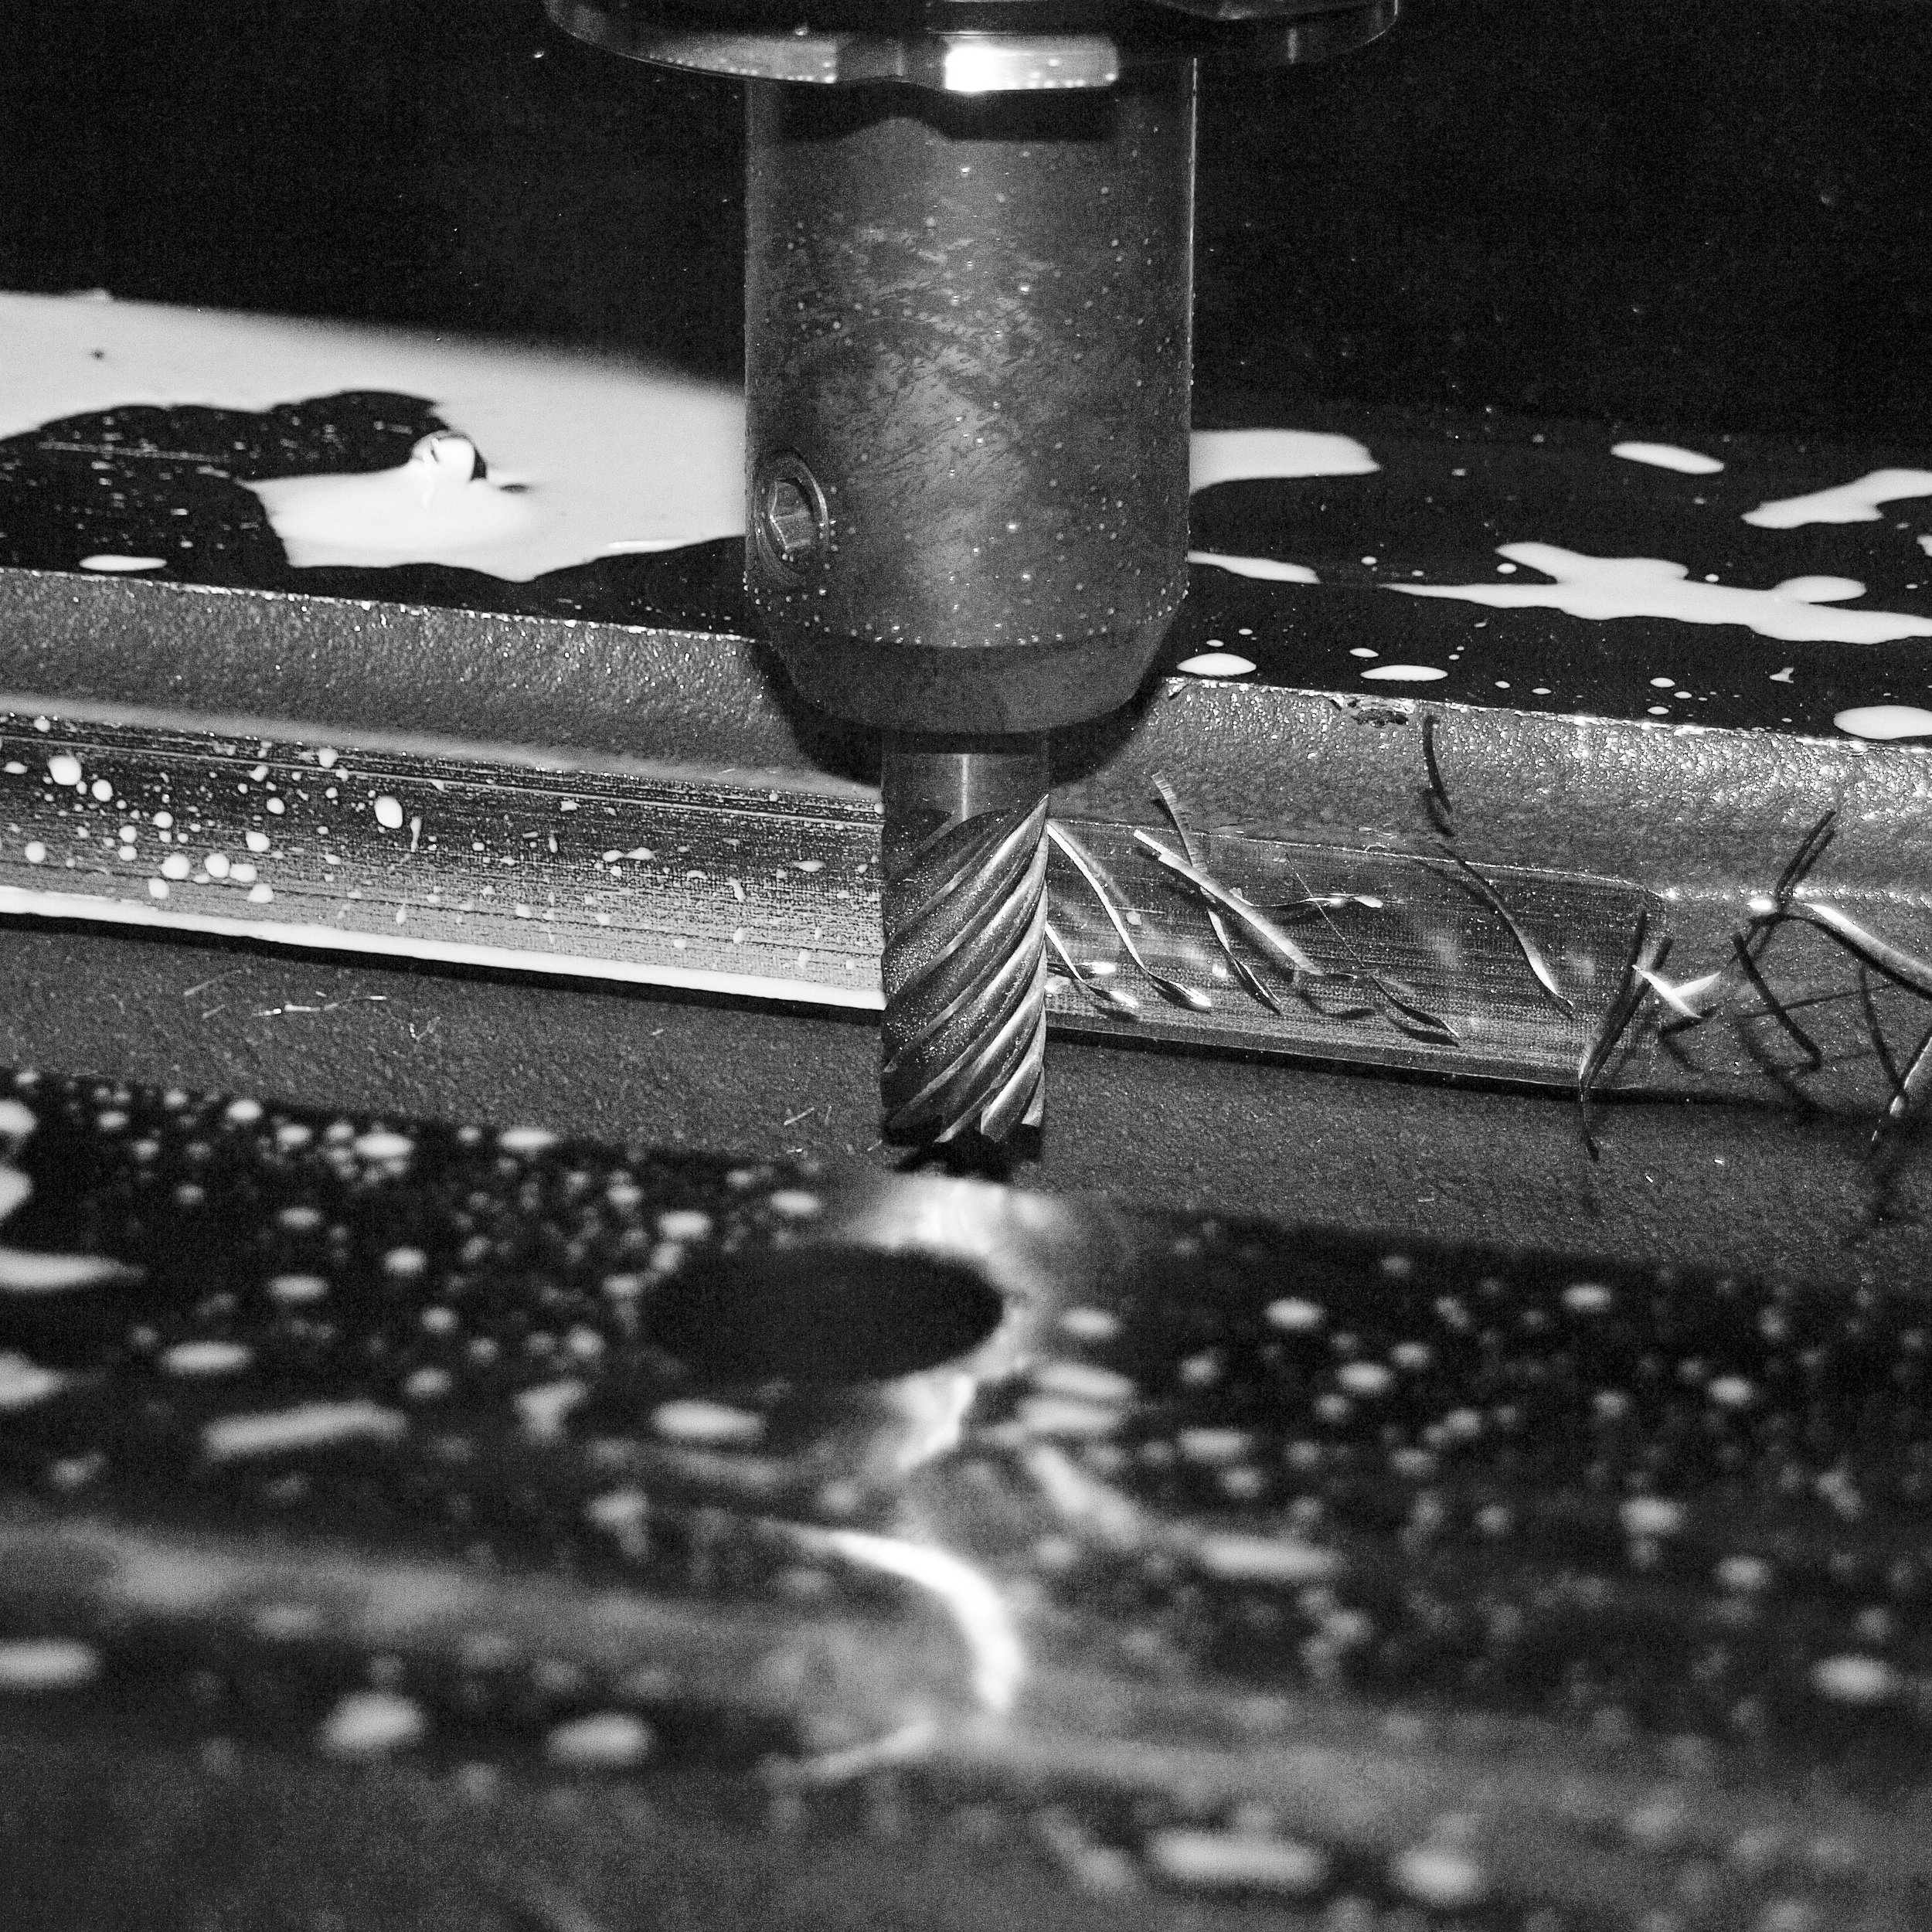 CNC Milling and Machining - Using traditional CNC milling capabilities our skilled machinists can quickly cut larger pieces or features while leaving the fine details to our wire EDM and small hole EDM capabilities.Traditional CNC methods are often the first step in generating the intricate pieces made capable by electric discharge machining.